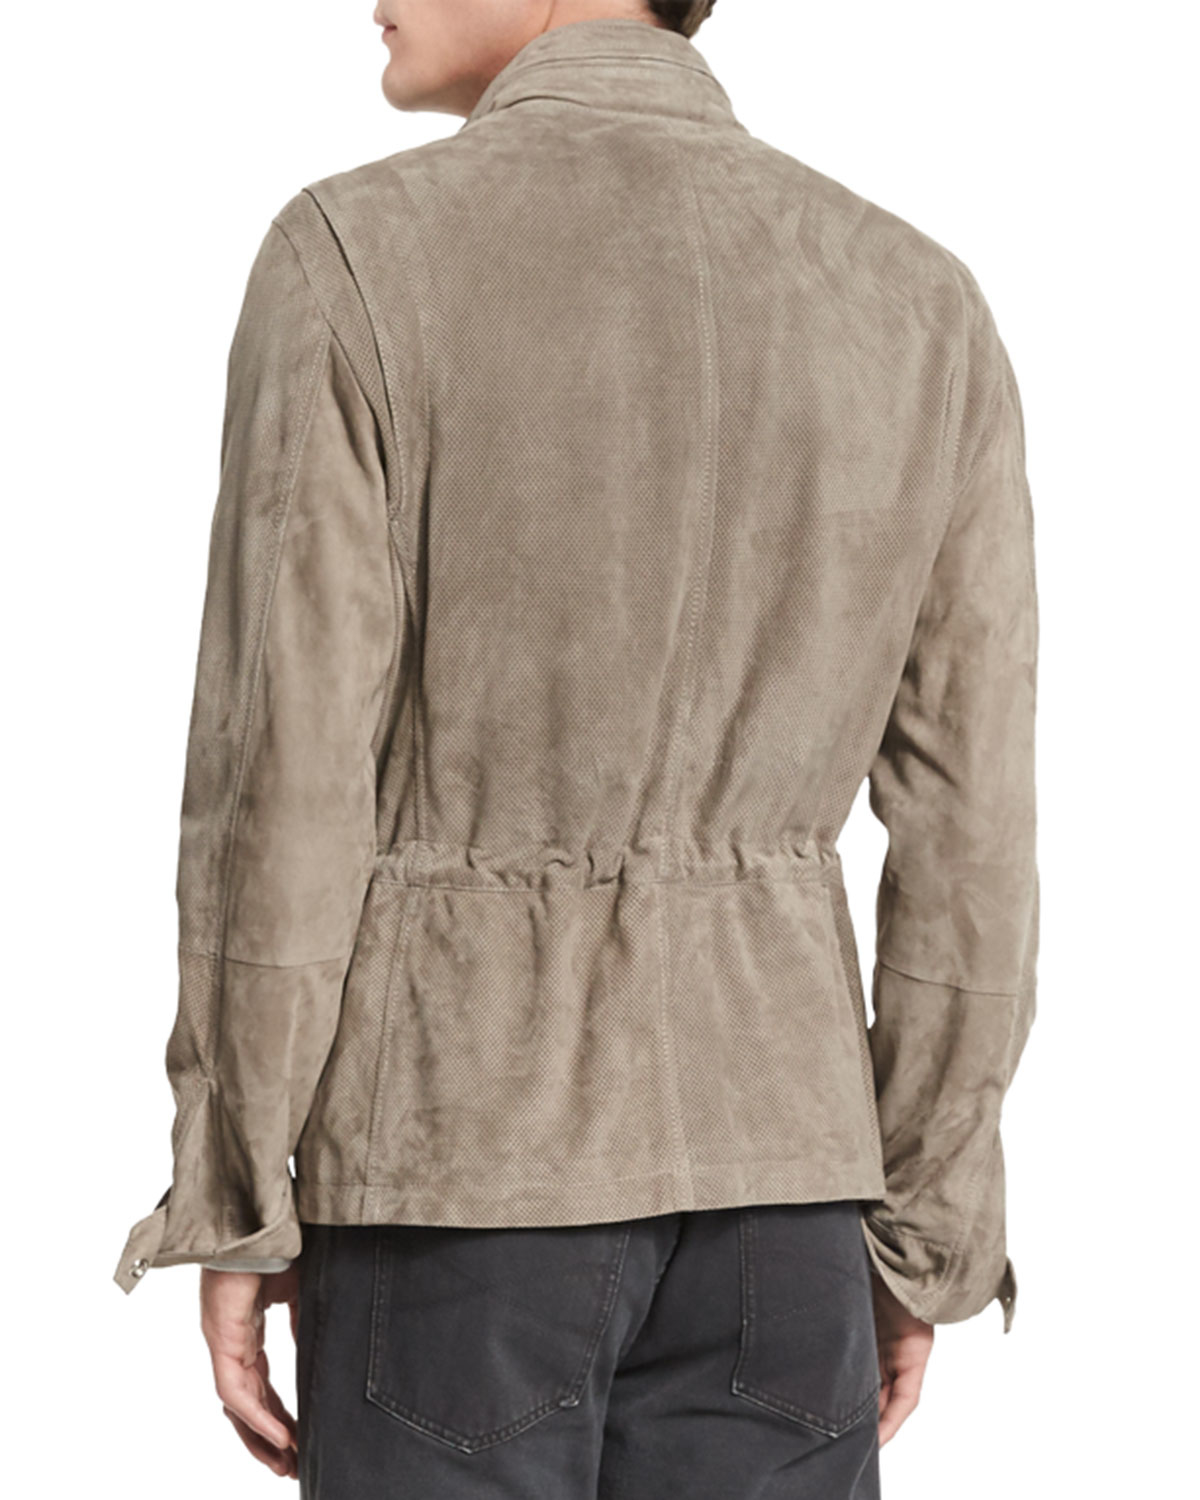 You searched for: suede safari jacket! Etsy is the home to thousands of handmade, vintage, and one-of-a-kind products and gifts related to your search. No matter what you're looking for or where you are in the world, our global marketplace of sellers can help you find unique and affordable options. Let's get started!